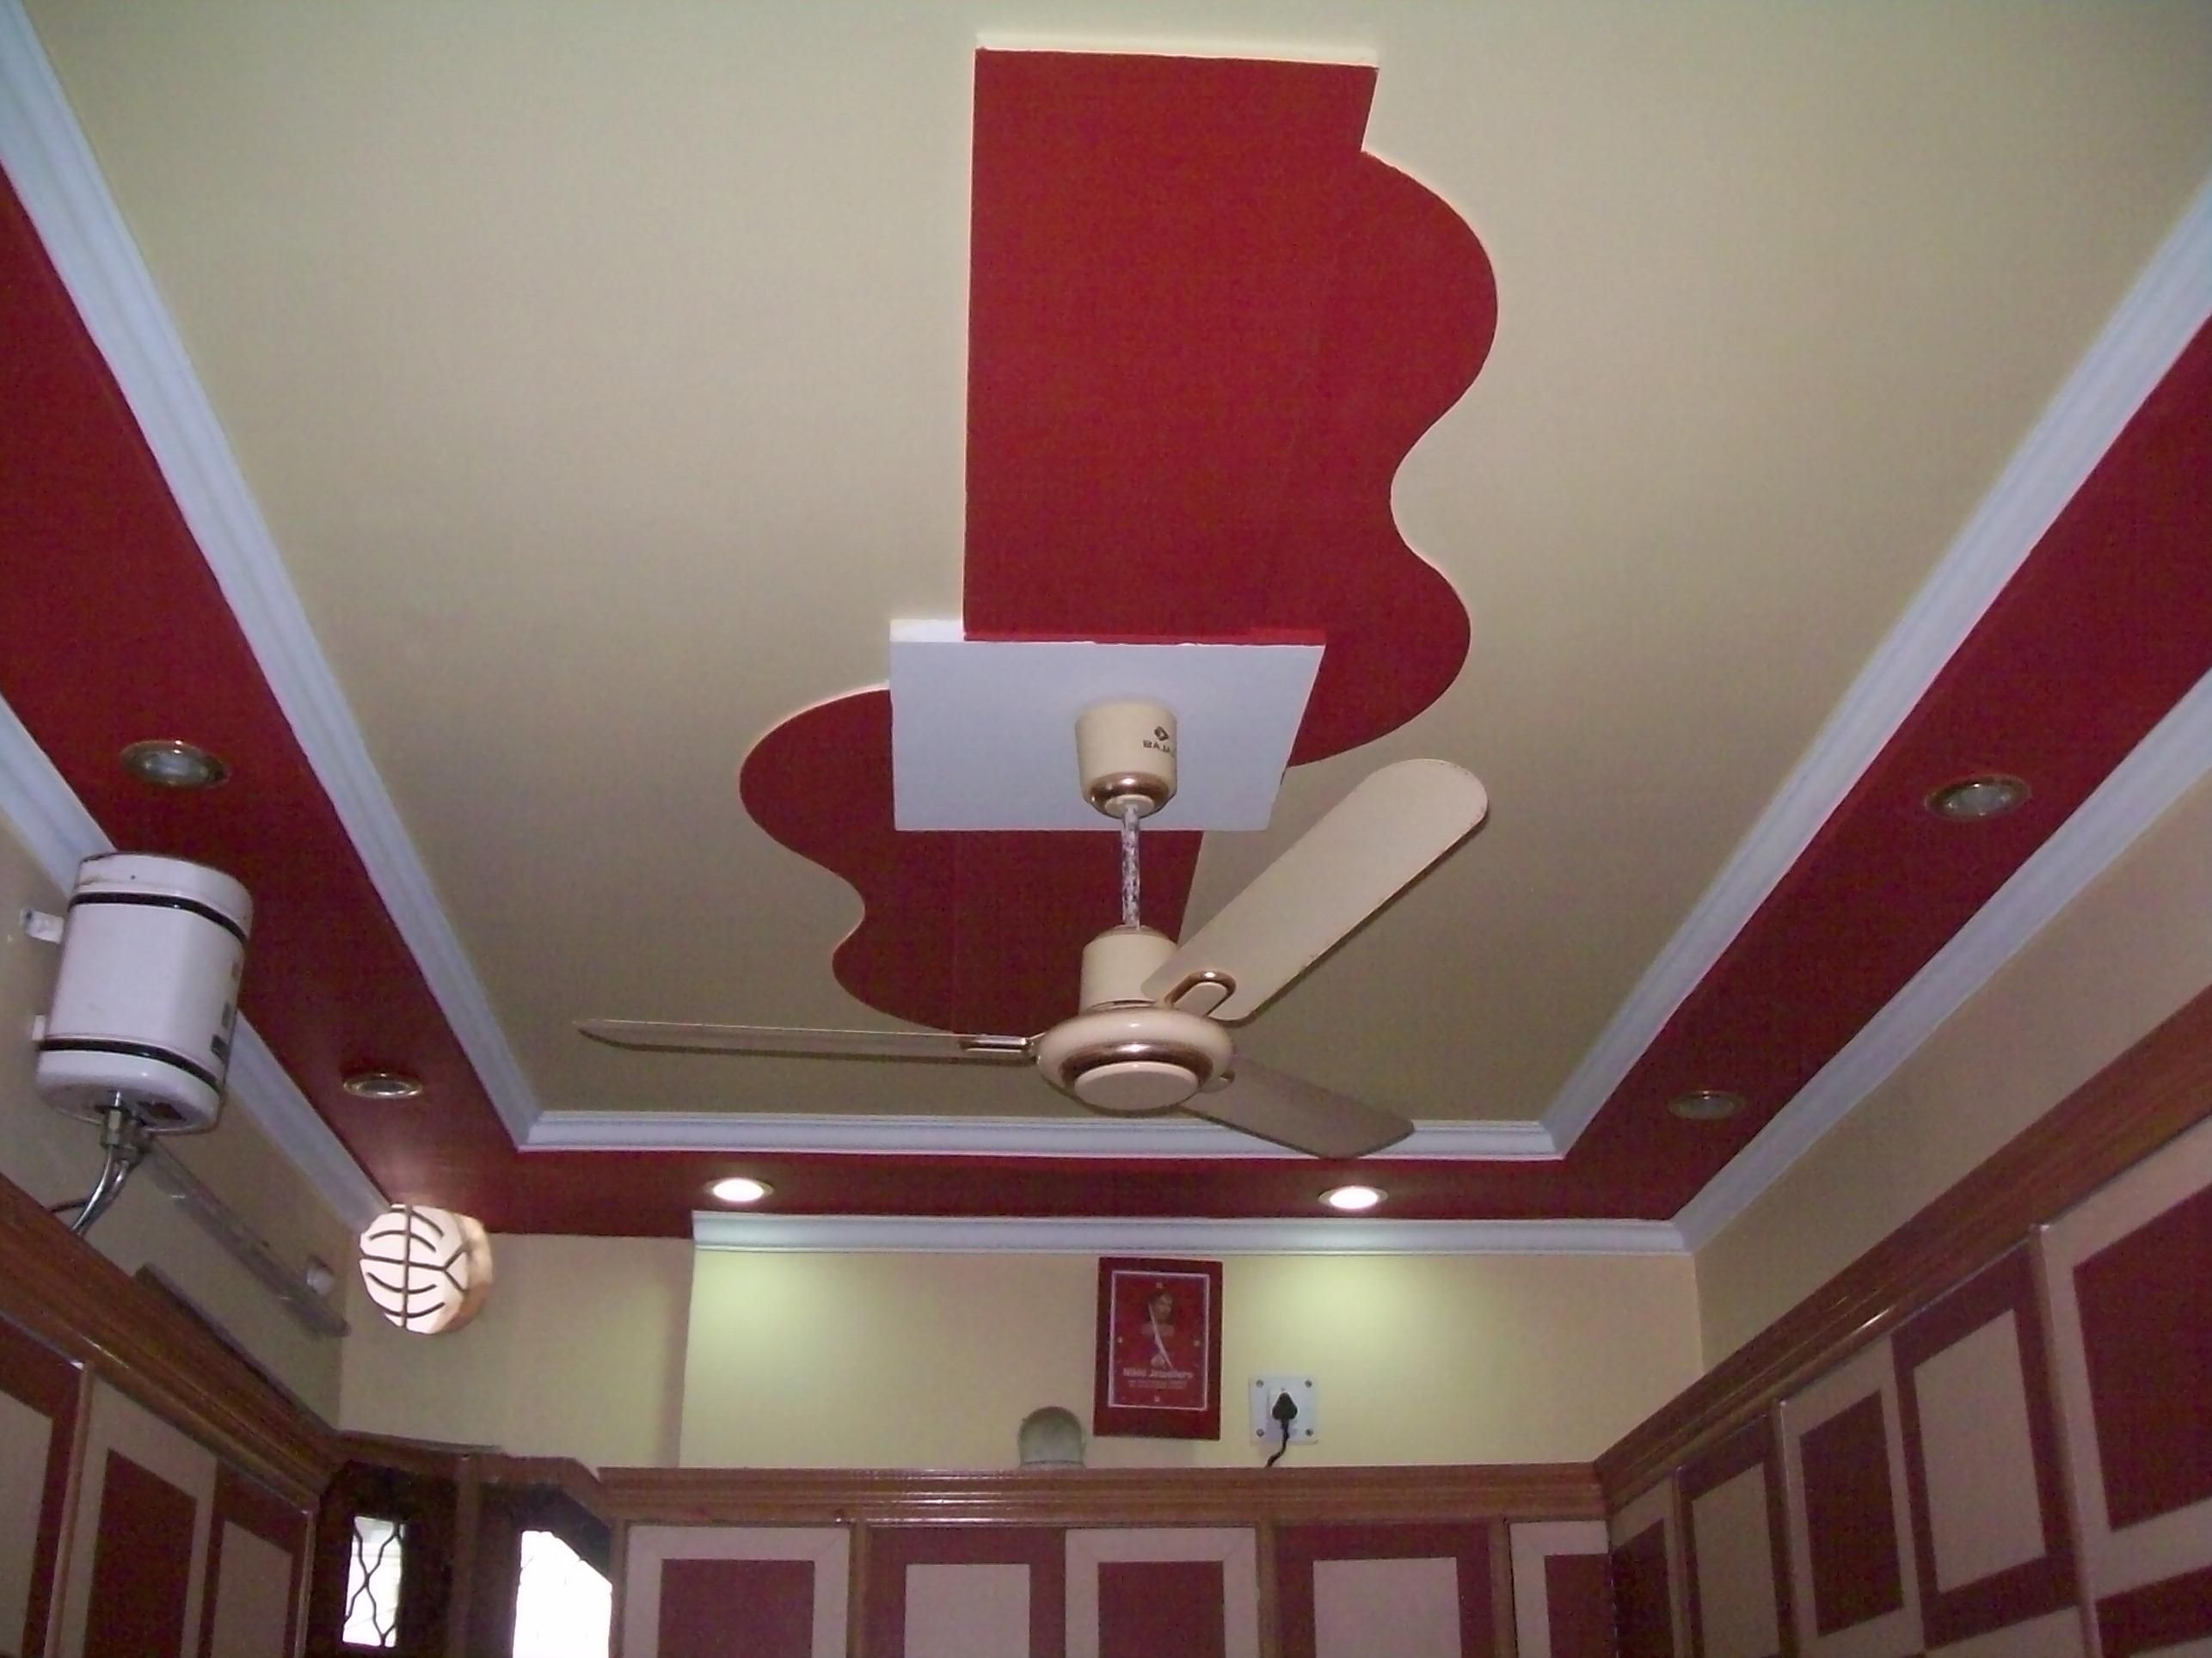 amazing ceiling designs virtual university of pakistan paris bedroom decor diy home plaster of paris designs for living